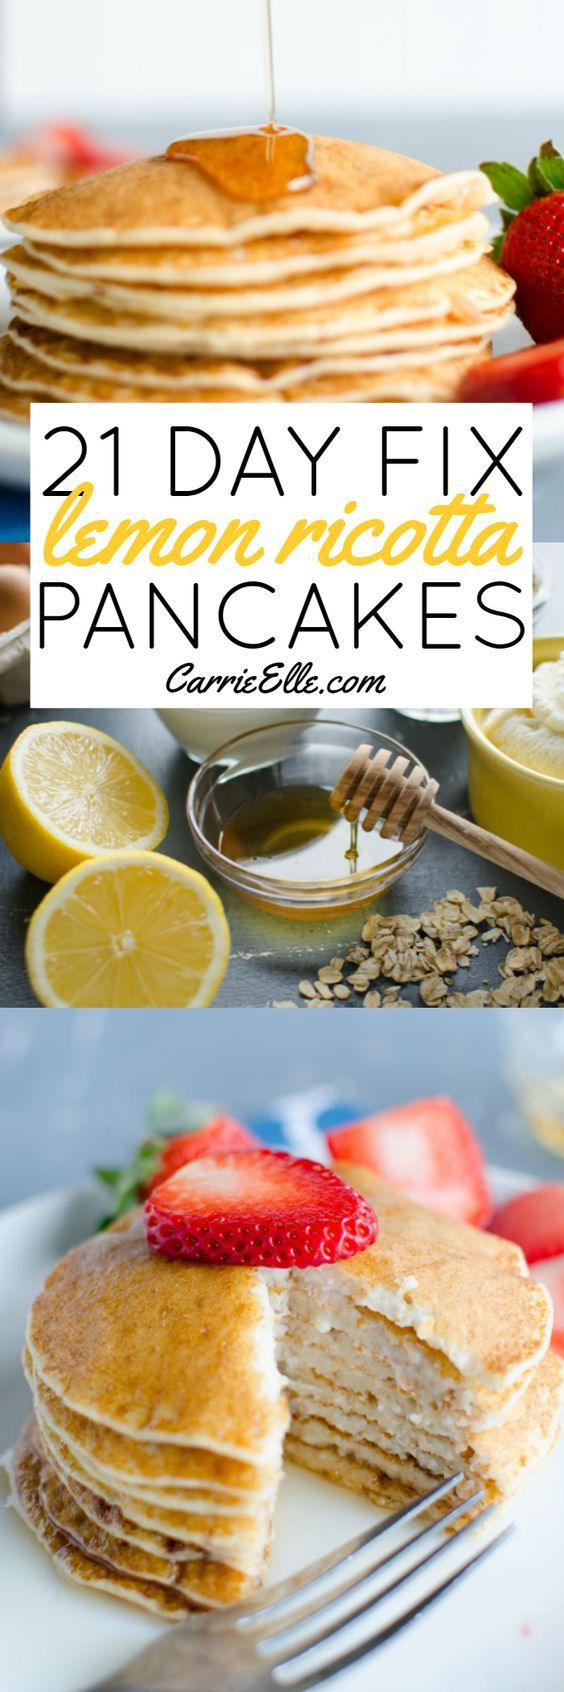 These 21 Day Fix lemon ricotta pancakes are good for you packed full of protein and sure to be a favorite breakfast for everyone in the house!